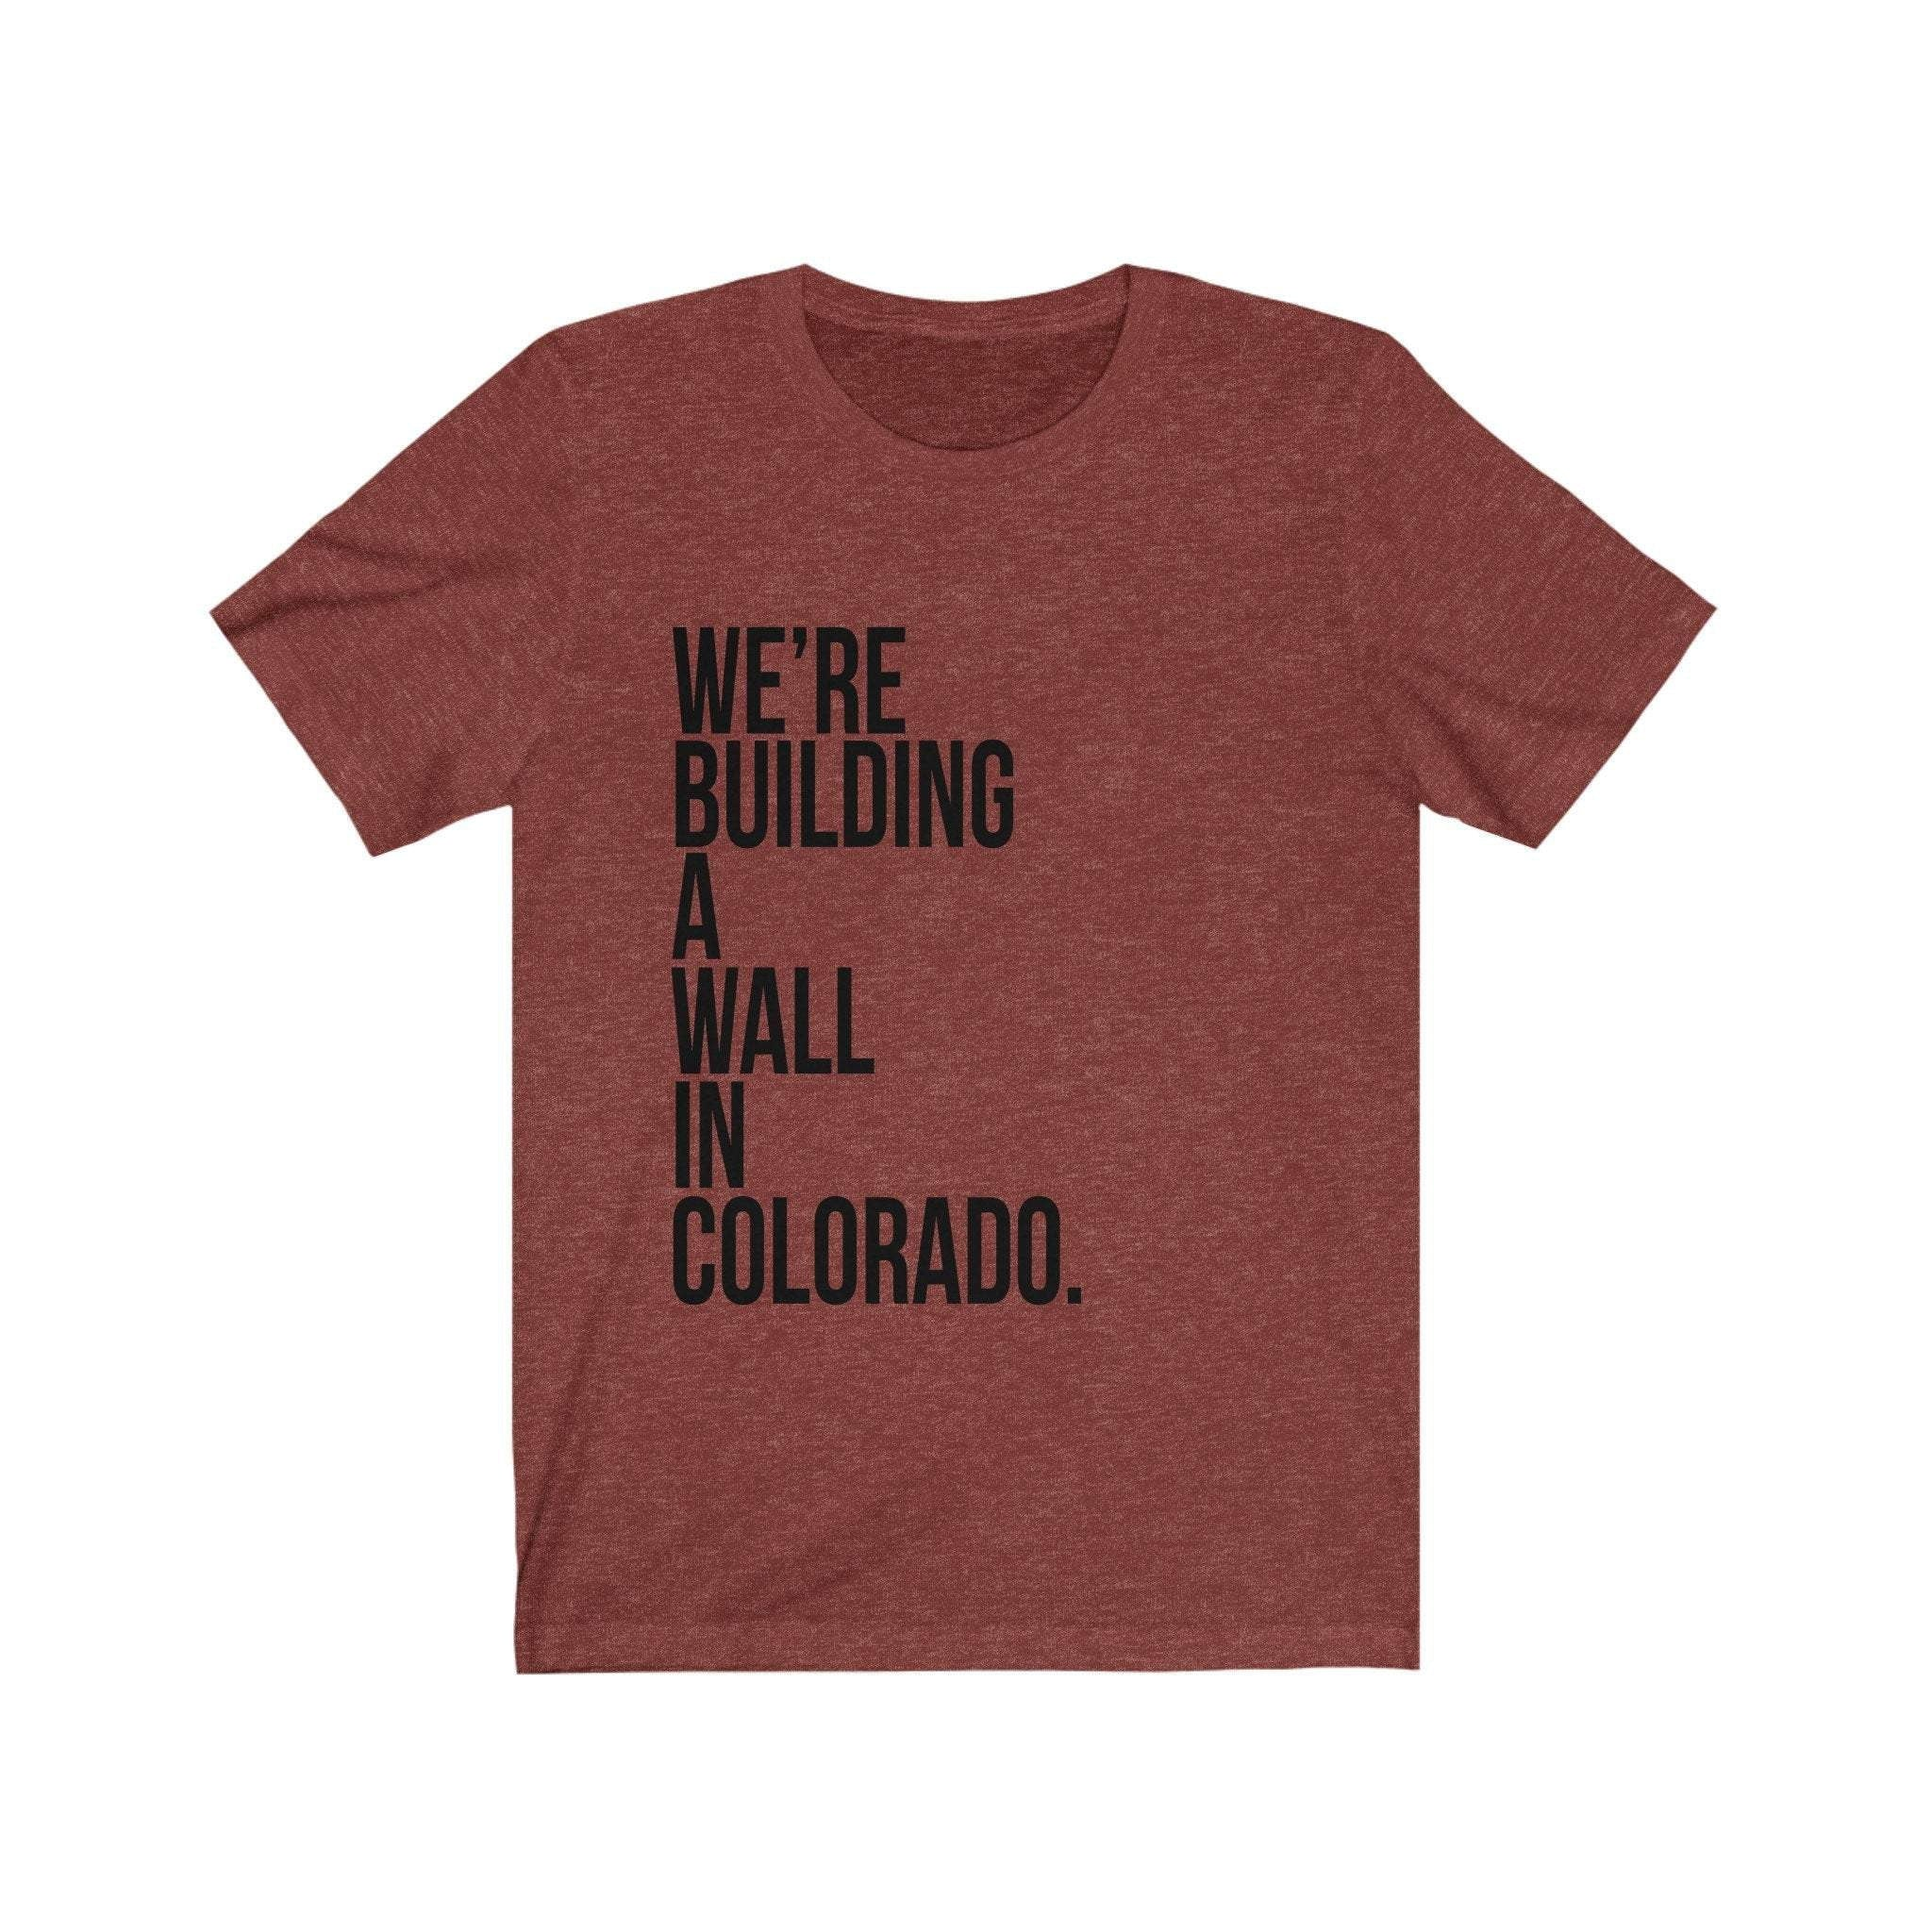 Donald Trump Shirt - We're Building A Wall In Colorado -  Funny Unisex Shirt